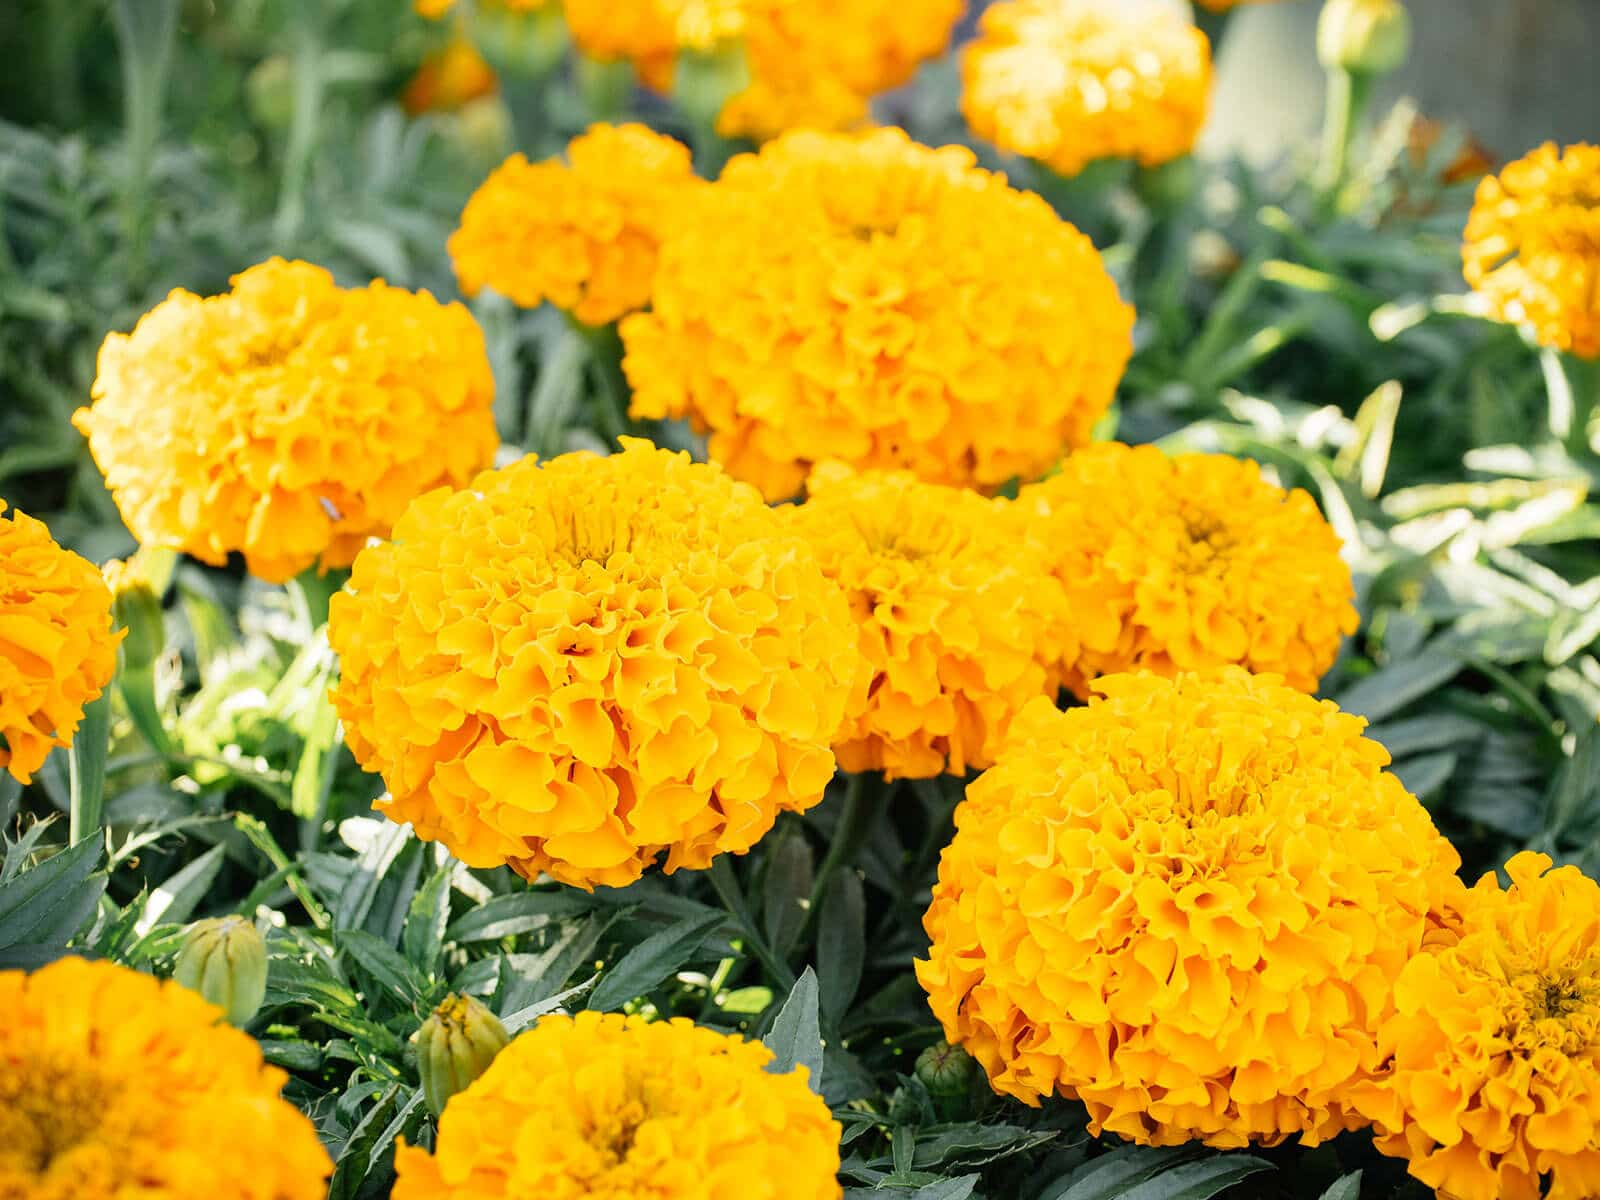 Certain plants like marigolds have strong scents that deter aphids